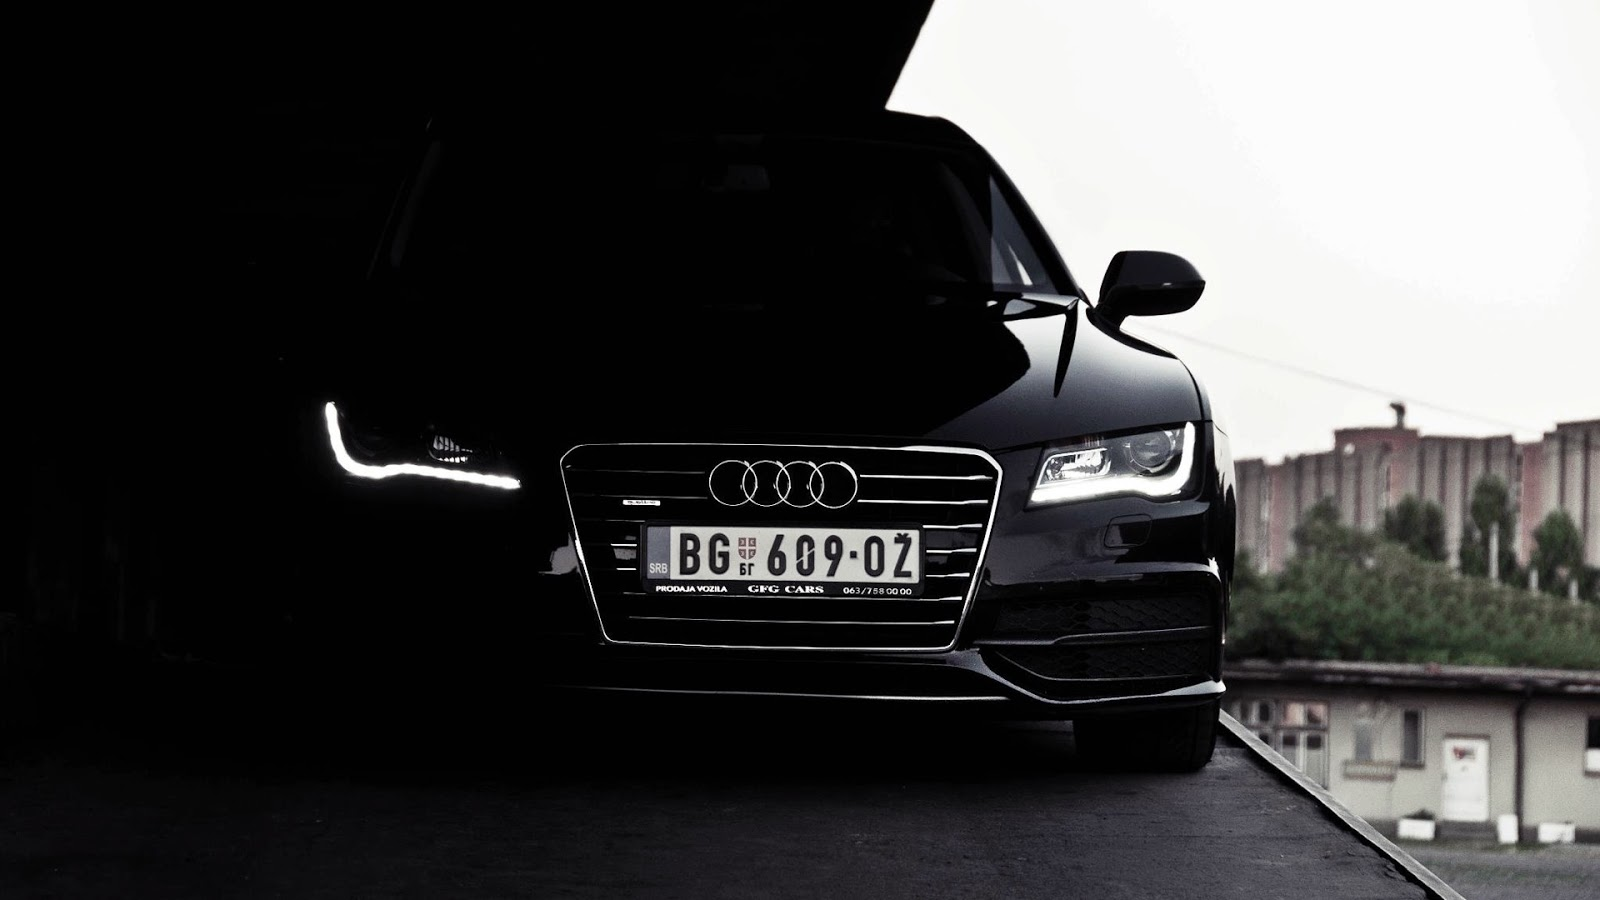 Black Audi A7 In Dark Headlights Hd Wallpaper Hd Car Wallpapers